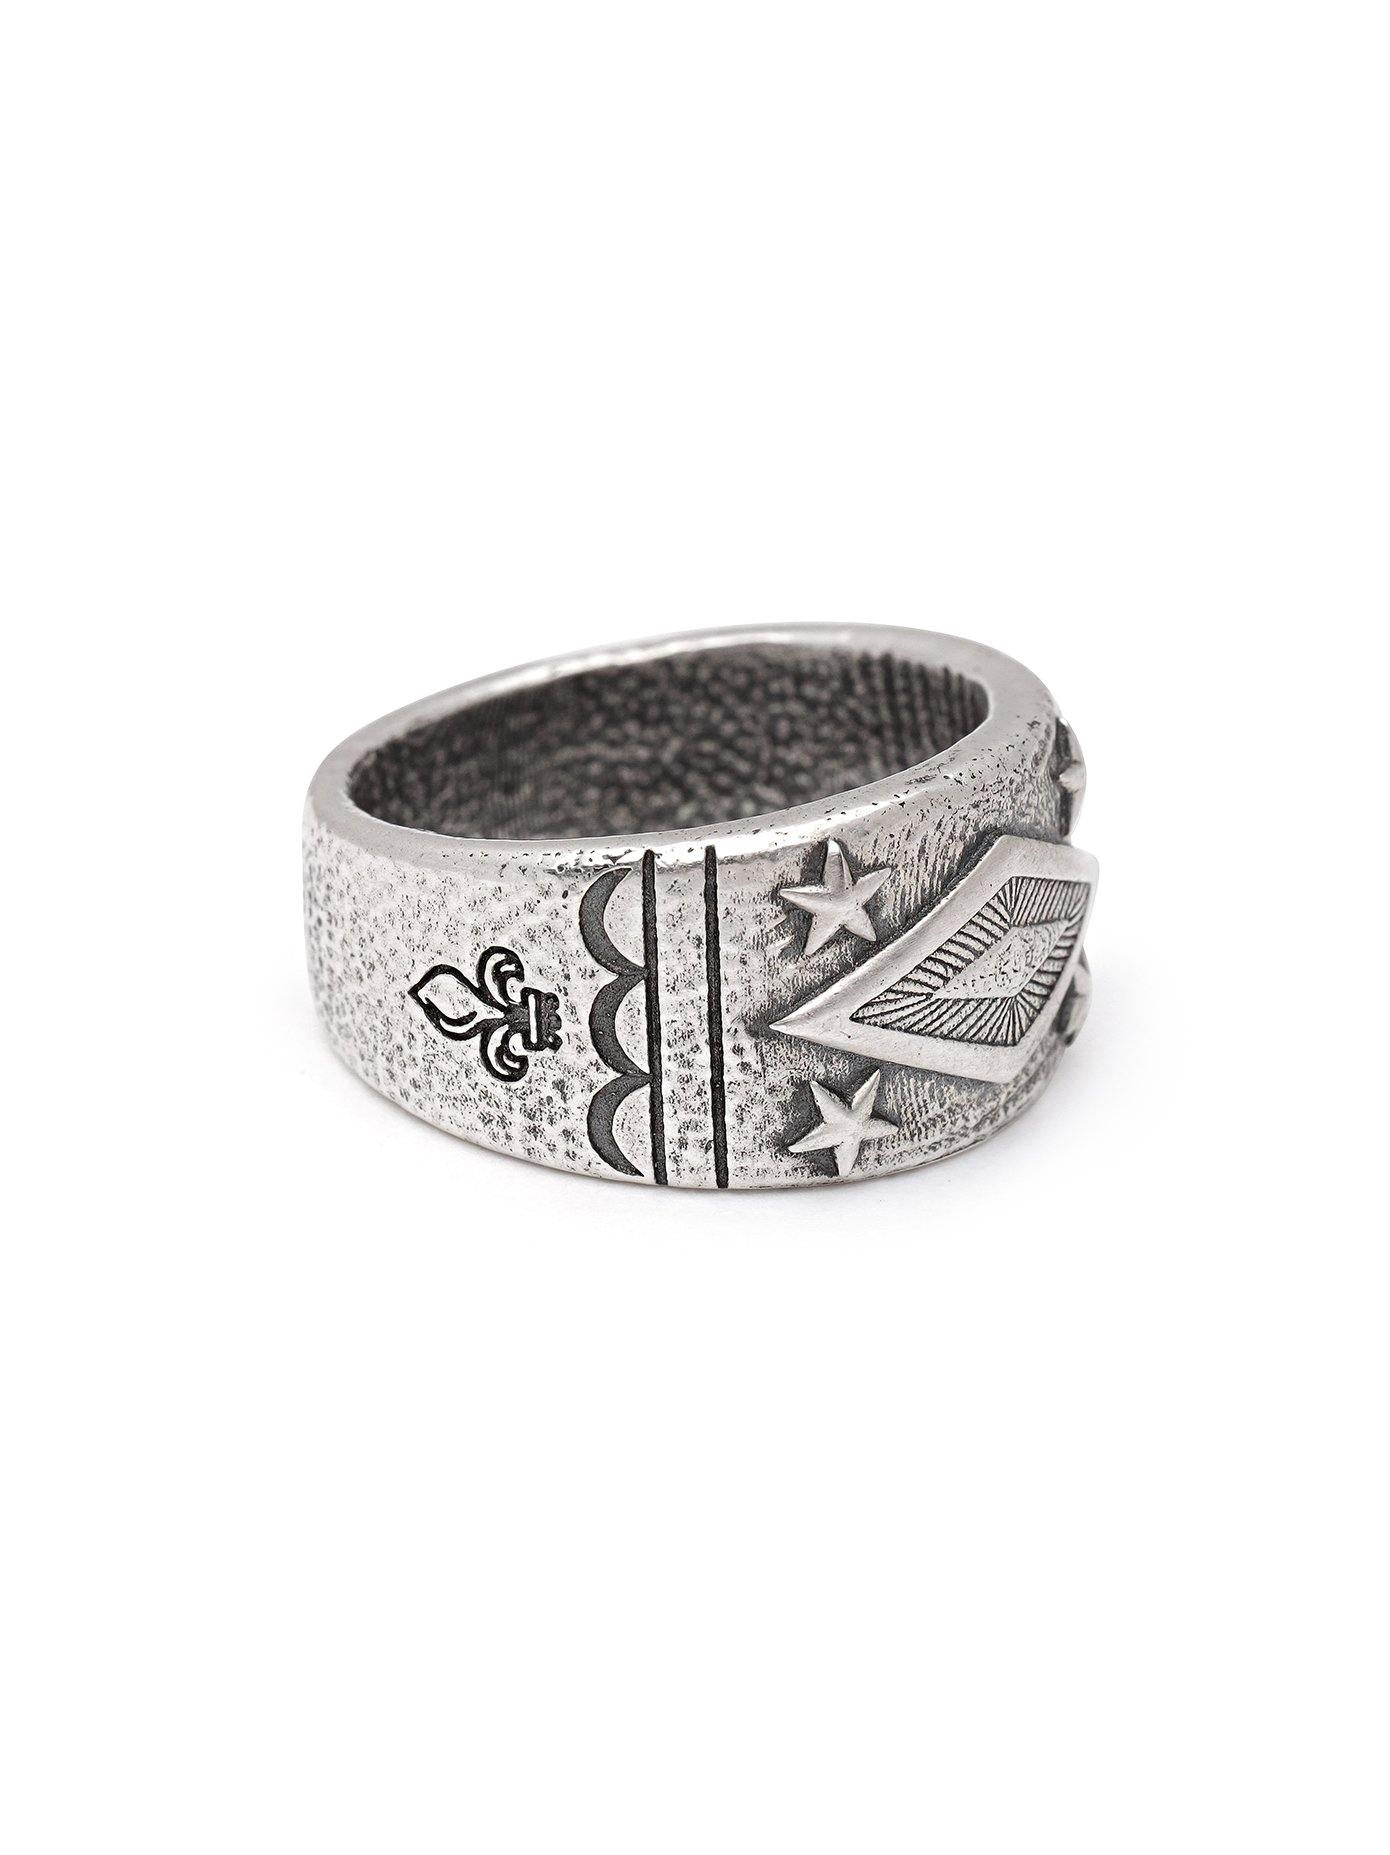 Details about  /NEW $220 NIALAYA Ring Authentic Mens 925 Silver Sterling Band s EU68 US13